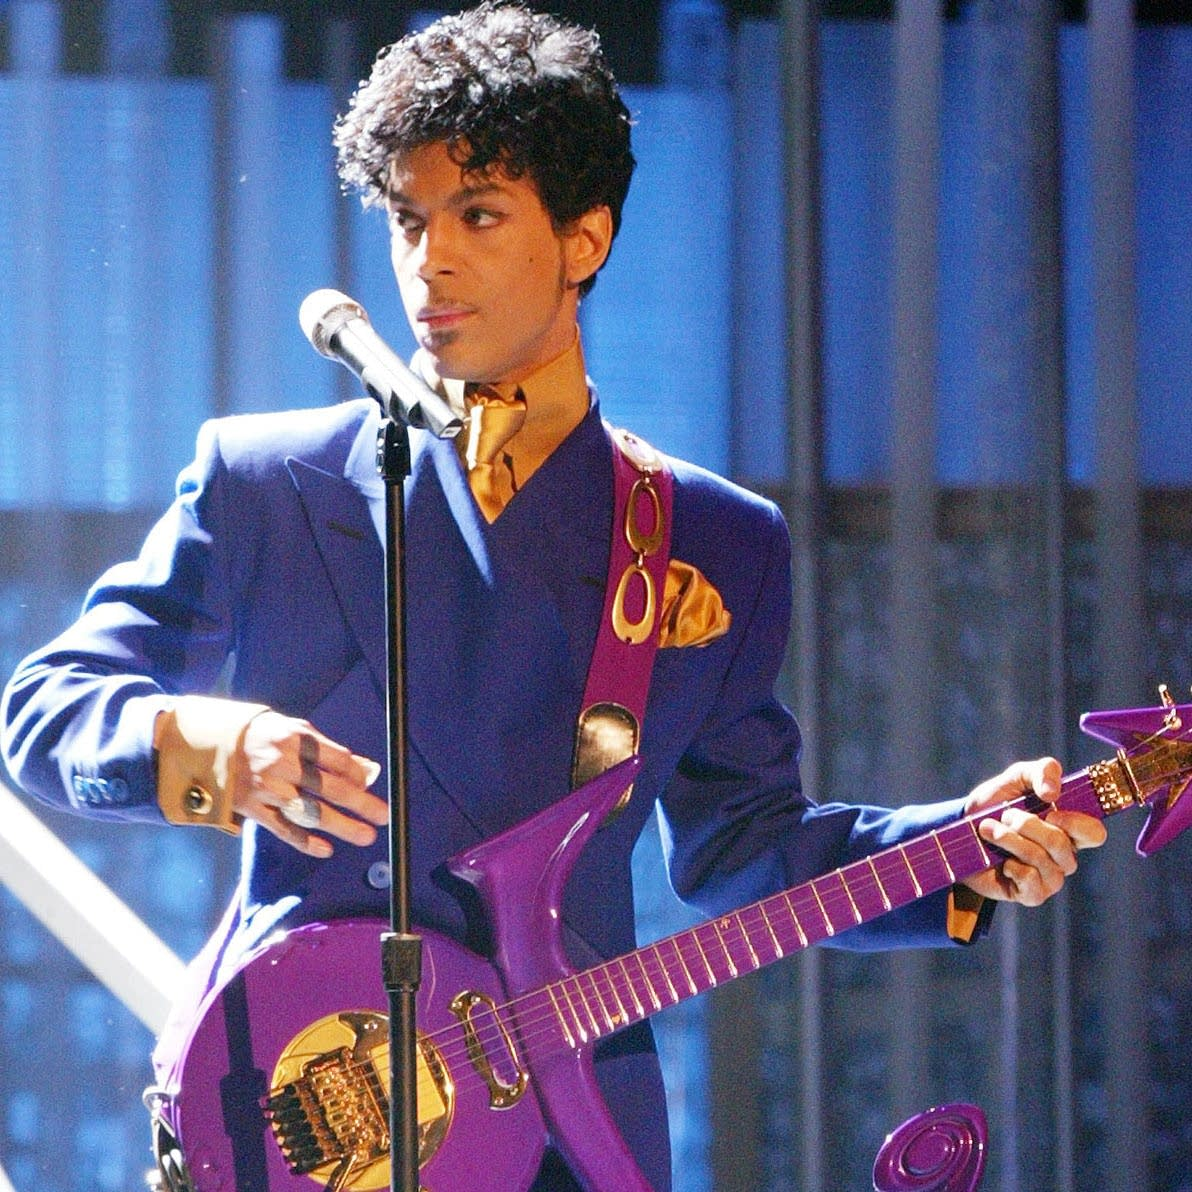 Prince at 46th Annual Grammy Awards